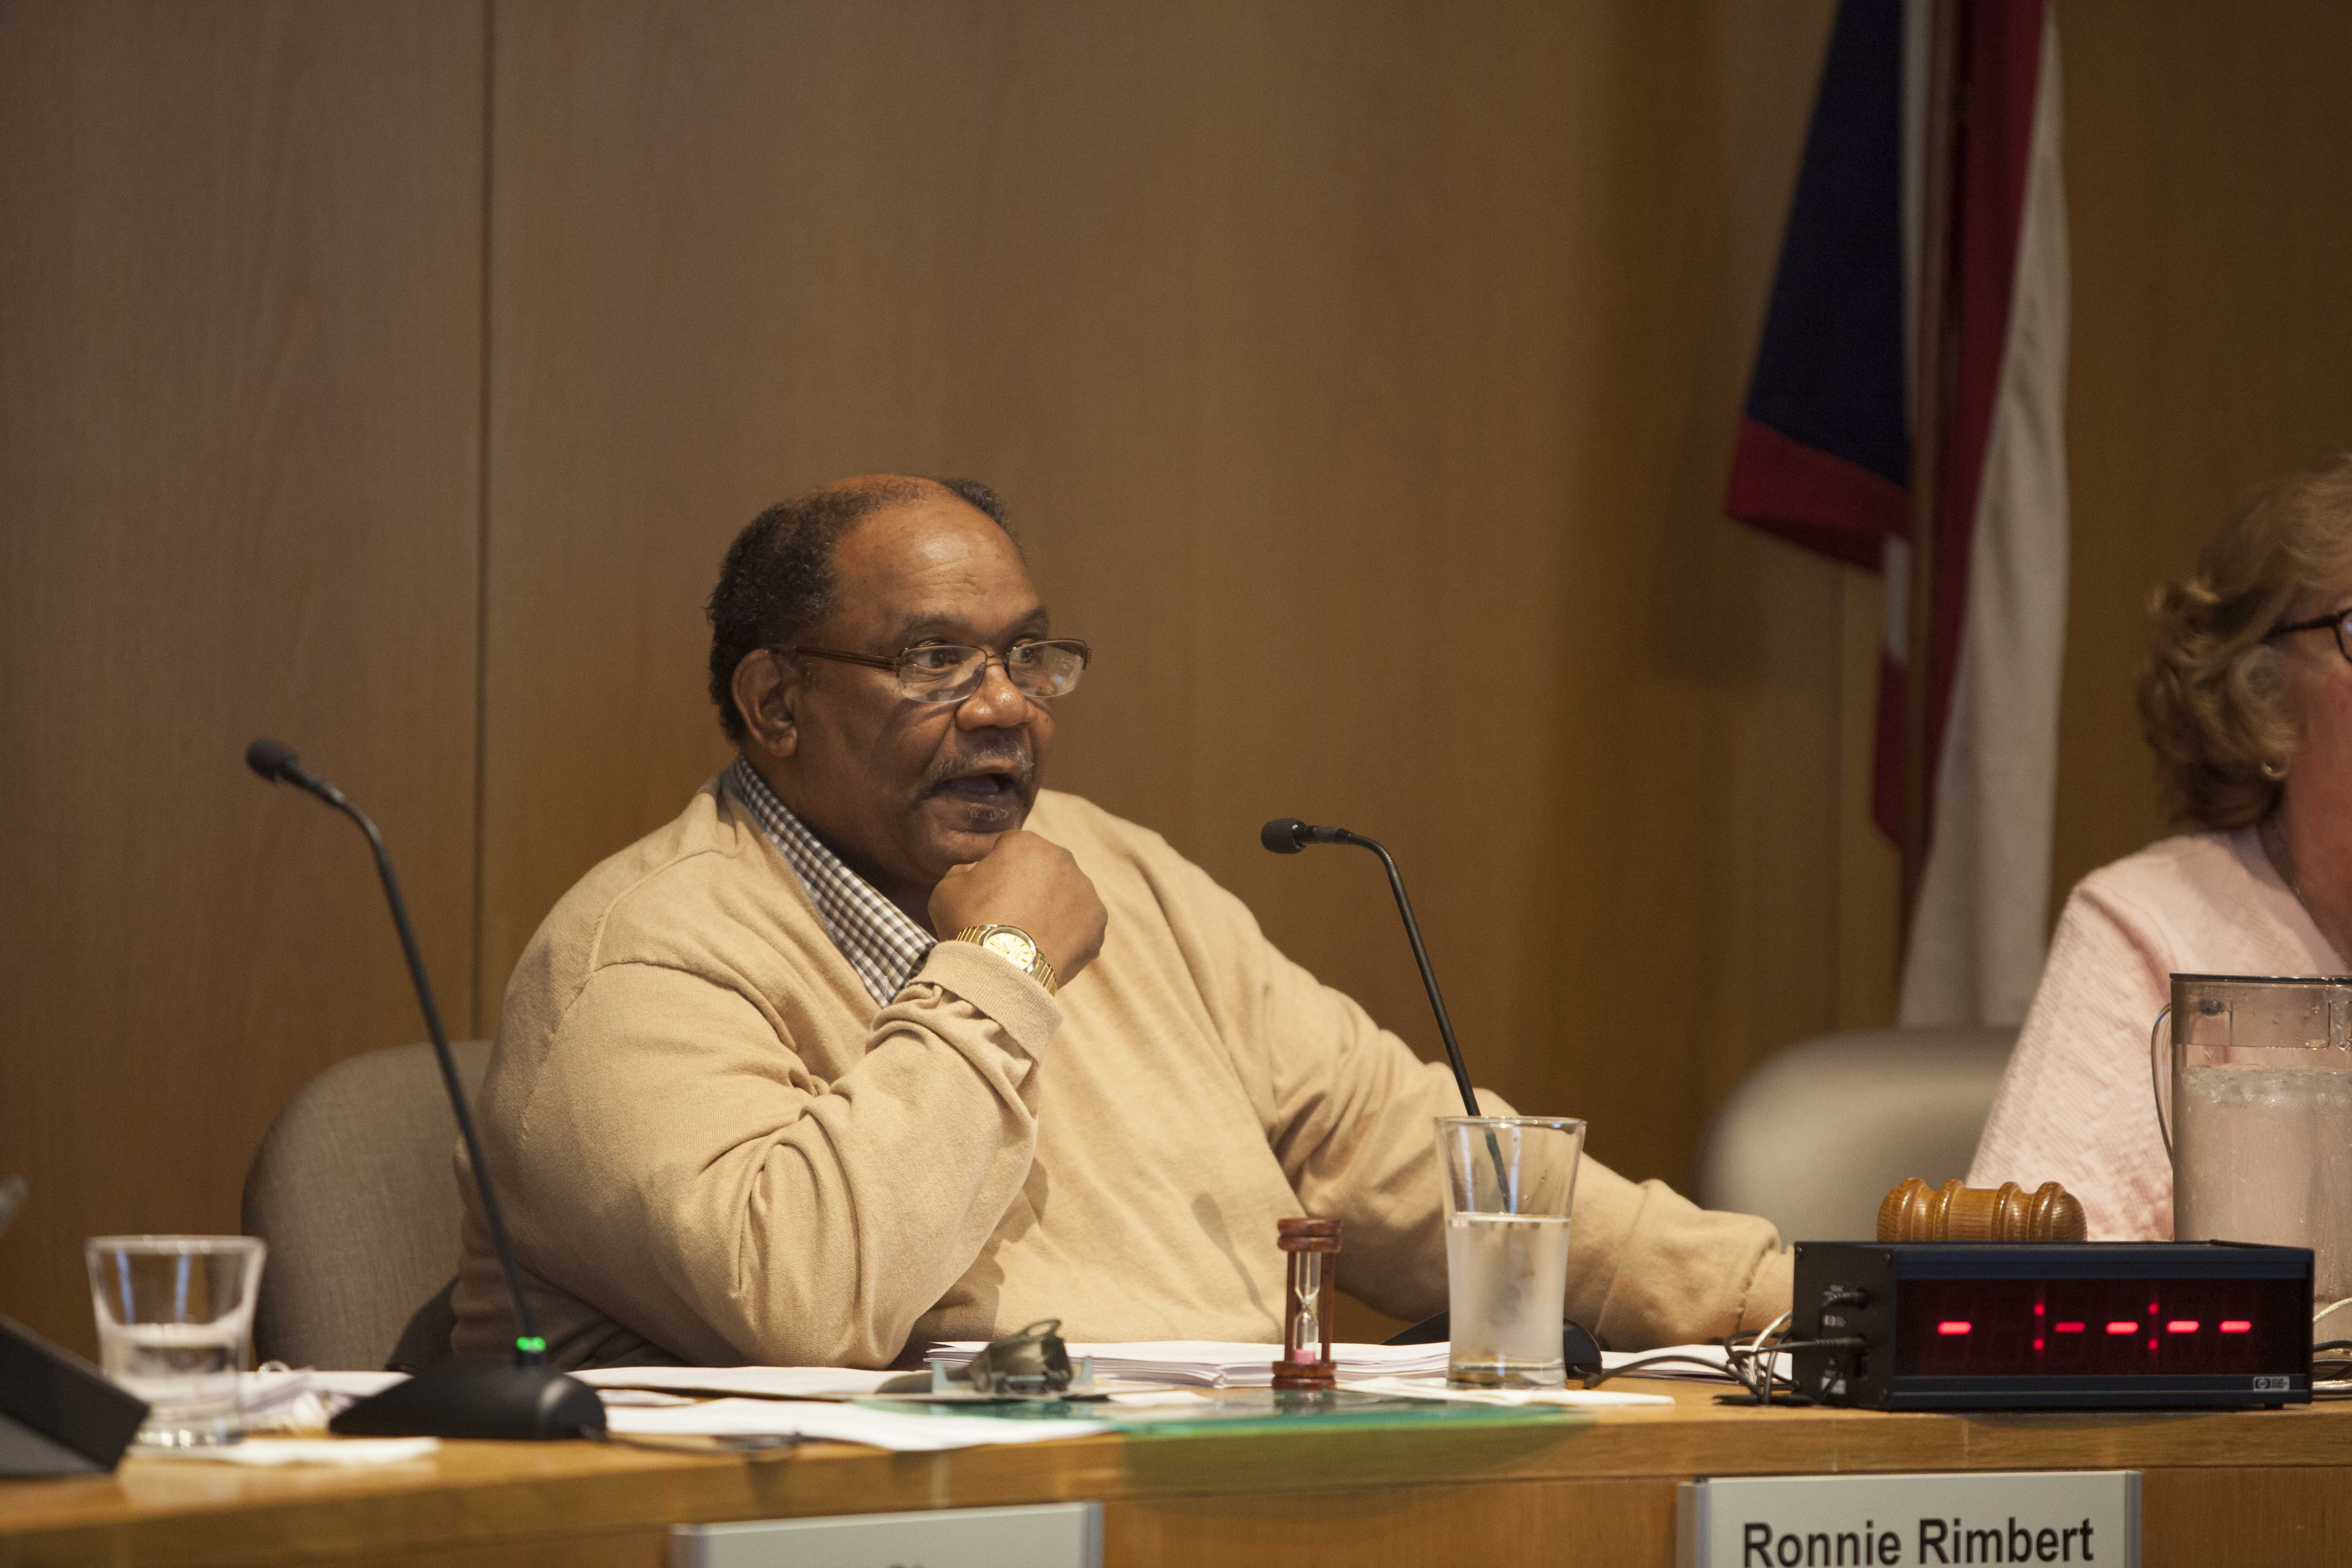 City Council President Ronnie Rimbert speaks at Monday's City Council meeting. Council passed a resolution opposing Governor John Kasich's proposed 2017– 2018 budget, which proposes centralized collection of business income tax returns.